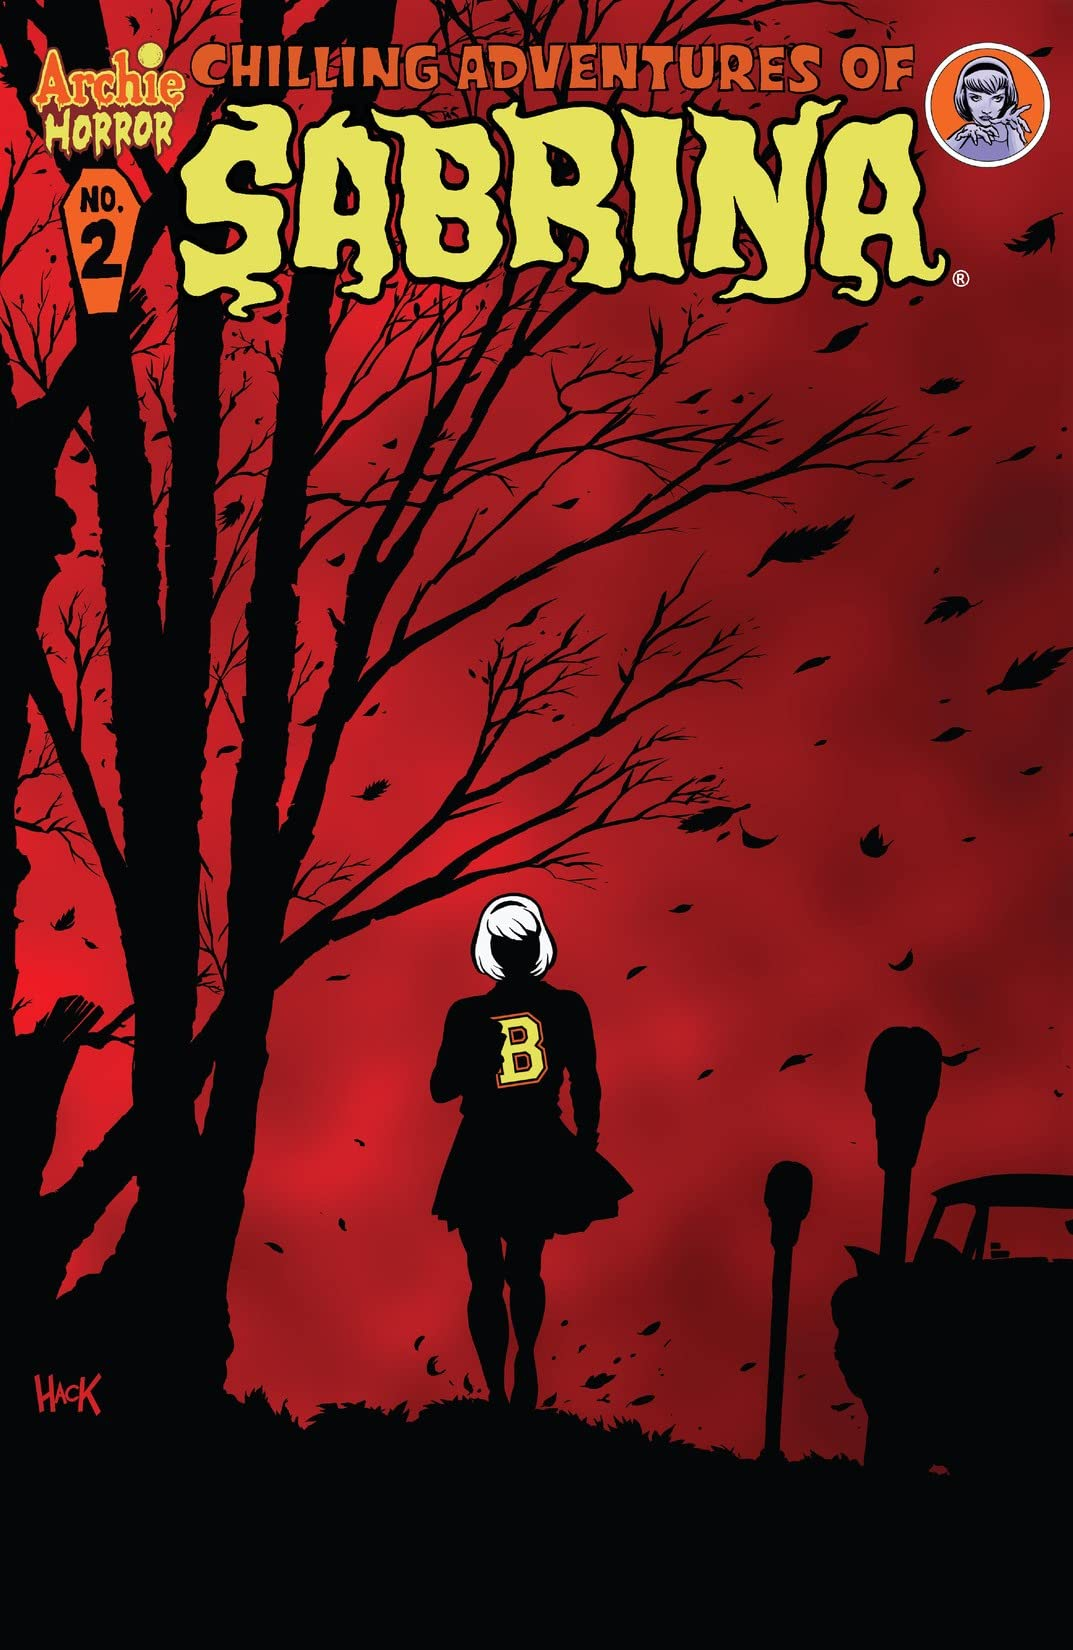 Chilling Adventures of Sabrina #2